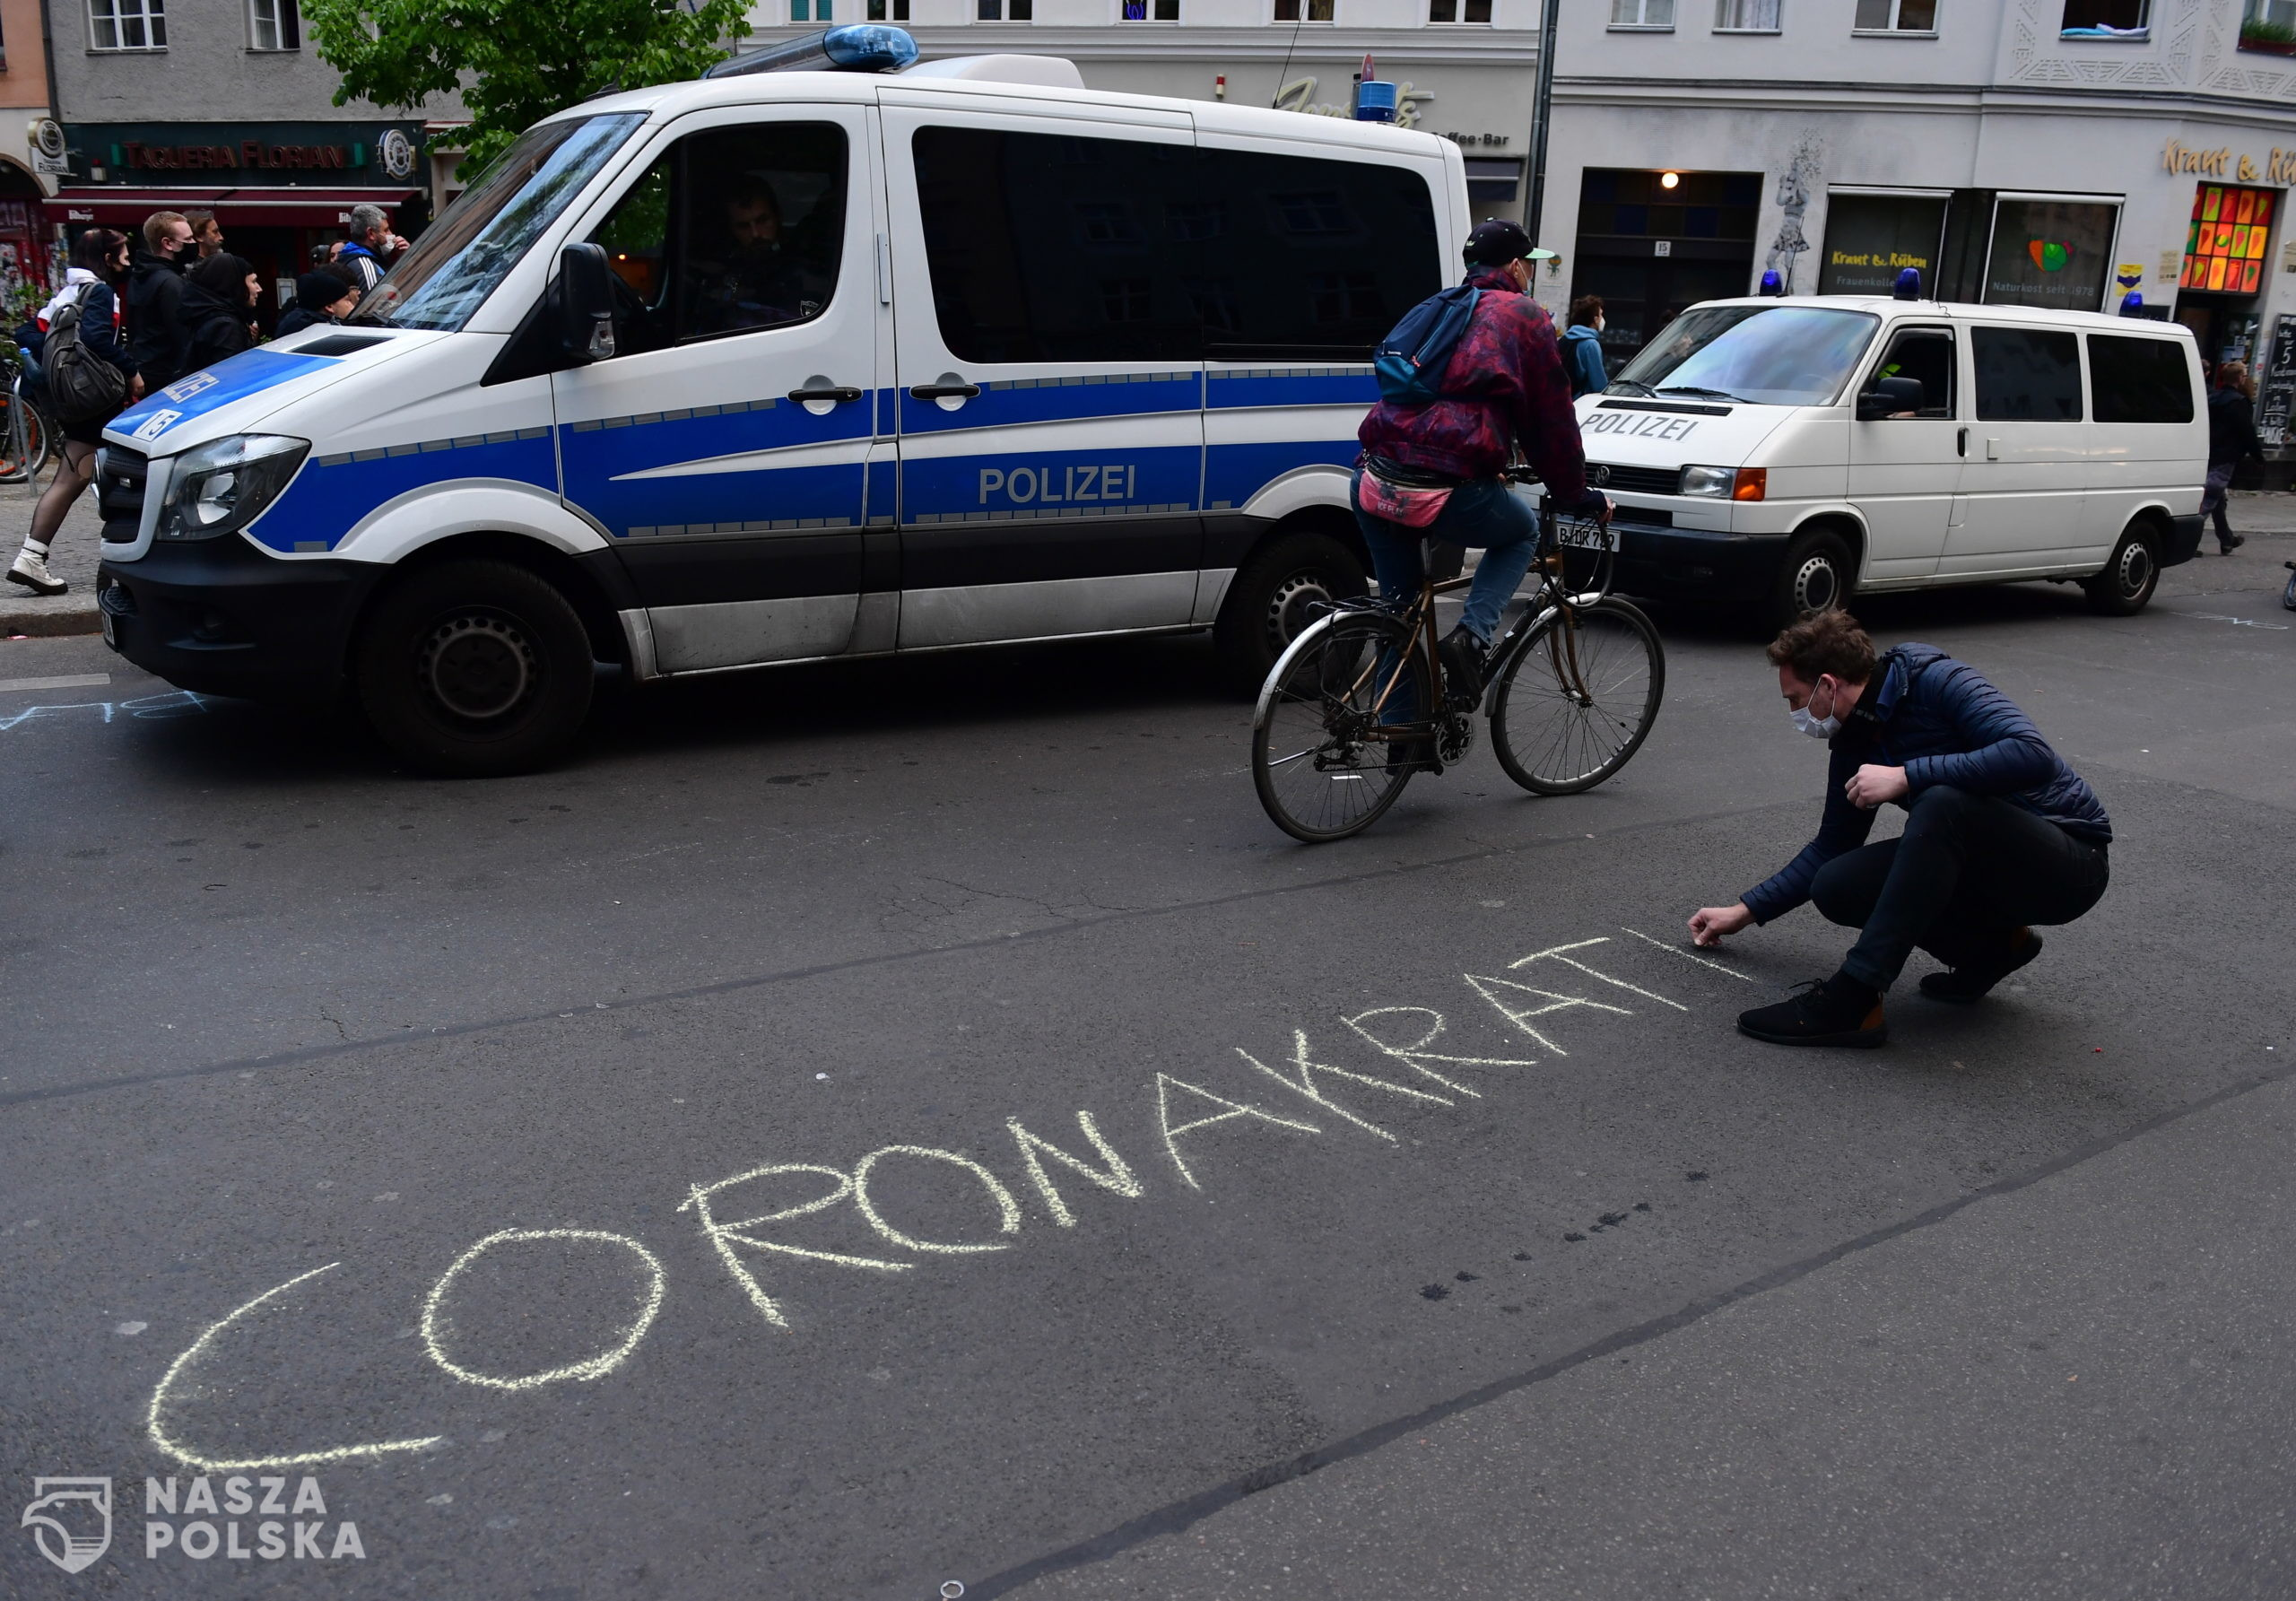 epa08396696 A man writes 'Coronacracy' on a street during a protest on May Day in the district Kreuzberg in Berlin, Germany, 01 May 2020. Labour Day, or May Day, is observed all over the world on the first day of May to celebrate the economic and social achievements of workers and fight for labourers rights. This year, May Day takes place under the influence of the pandemic crisis of the SARS-CoV-2 coronavirus which causes the Covid-19 disease.  EPA/FILIP SINGER  Dostawca: PAP/EPA.